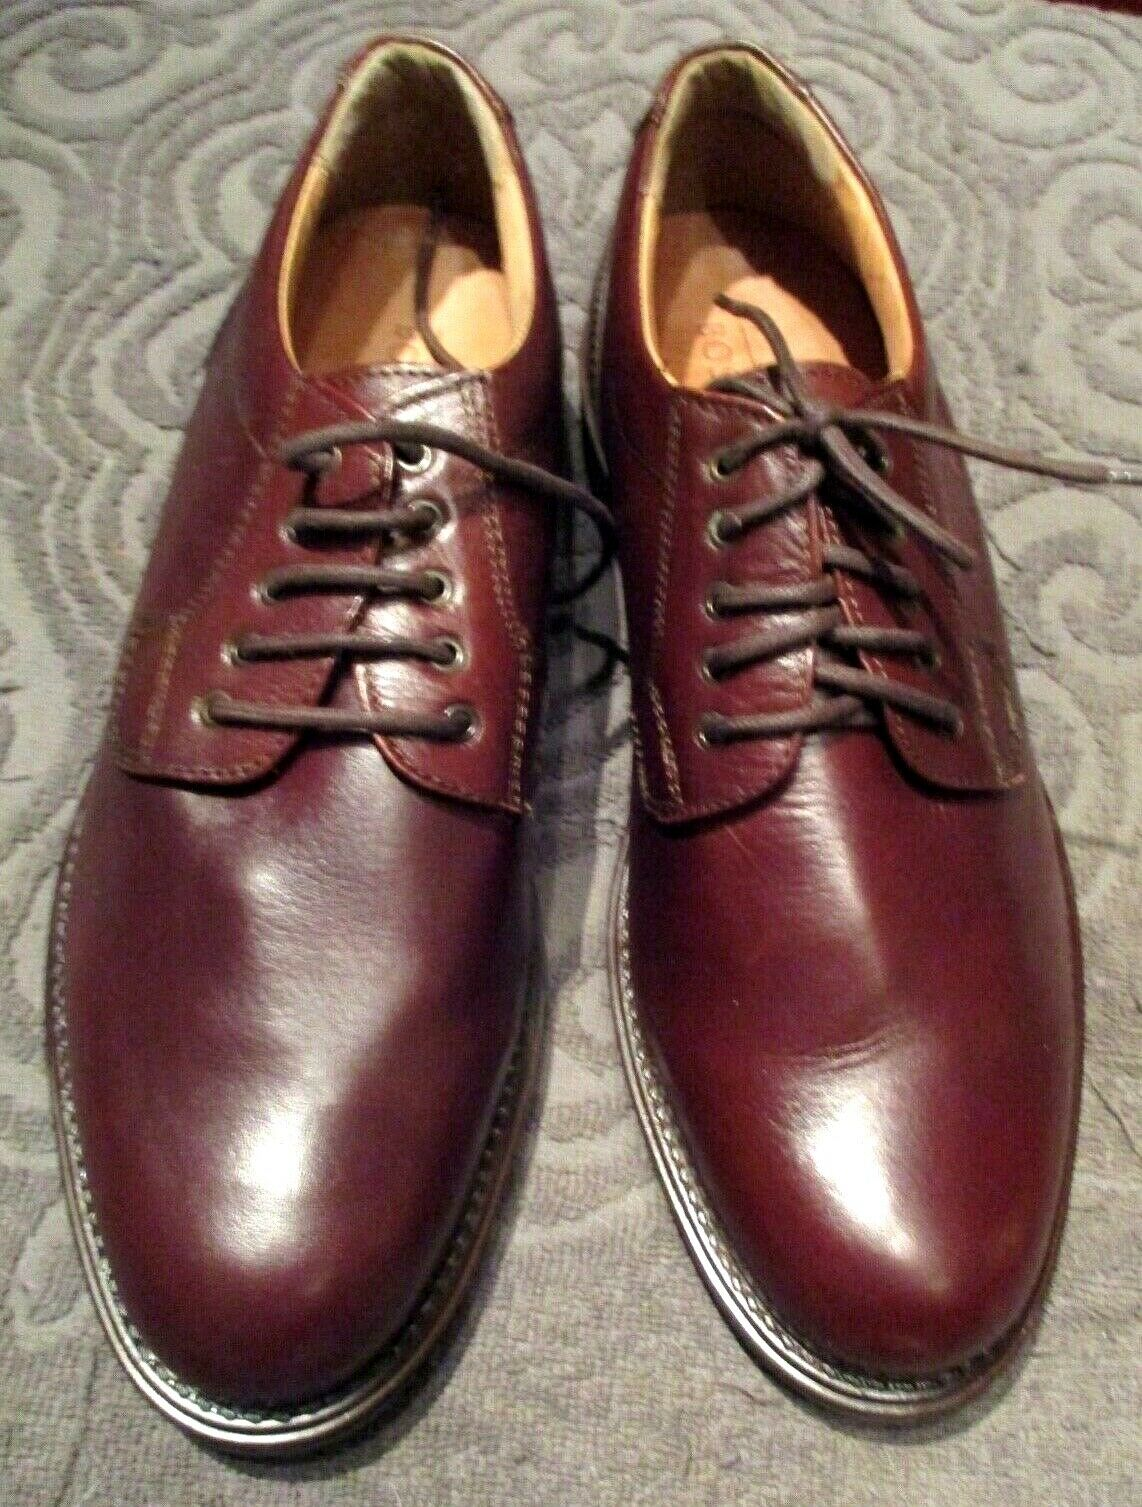 Bostonian Mens shoes Oxford Leather Lace Up Size 9.5 M Brown Leather Good Tread